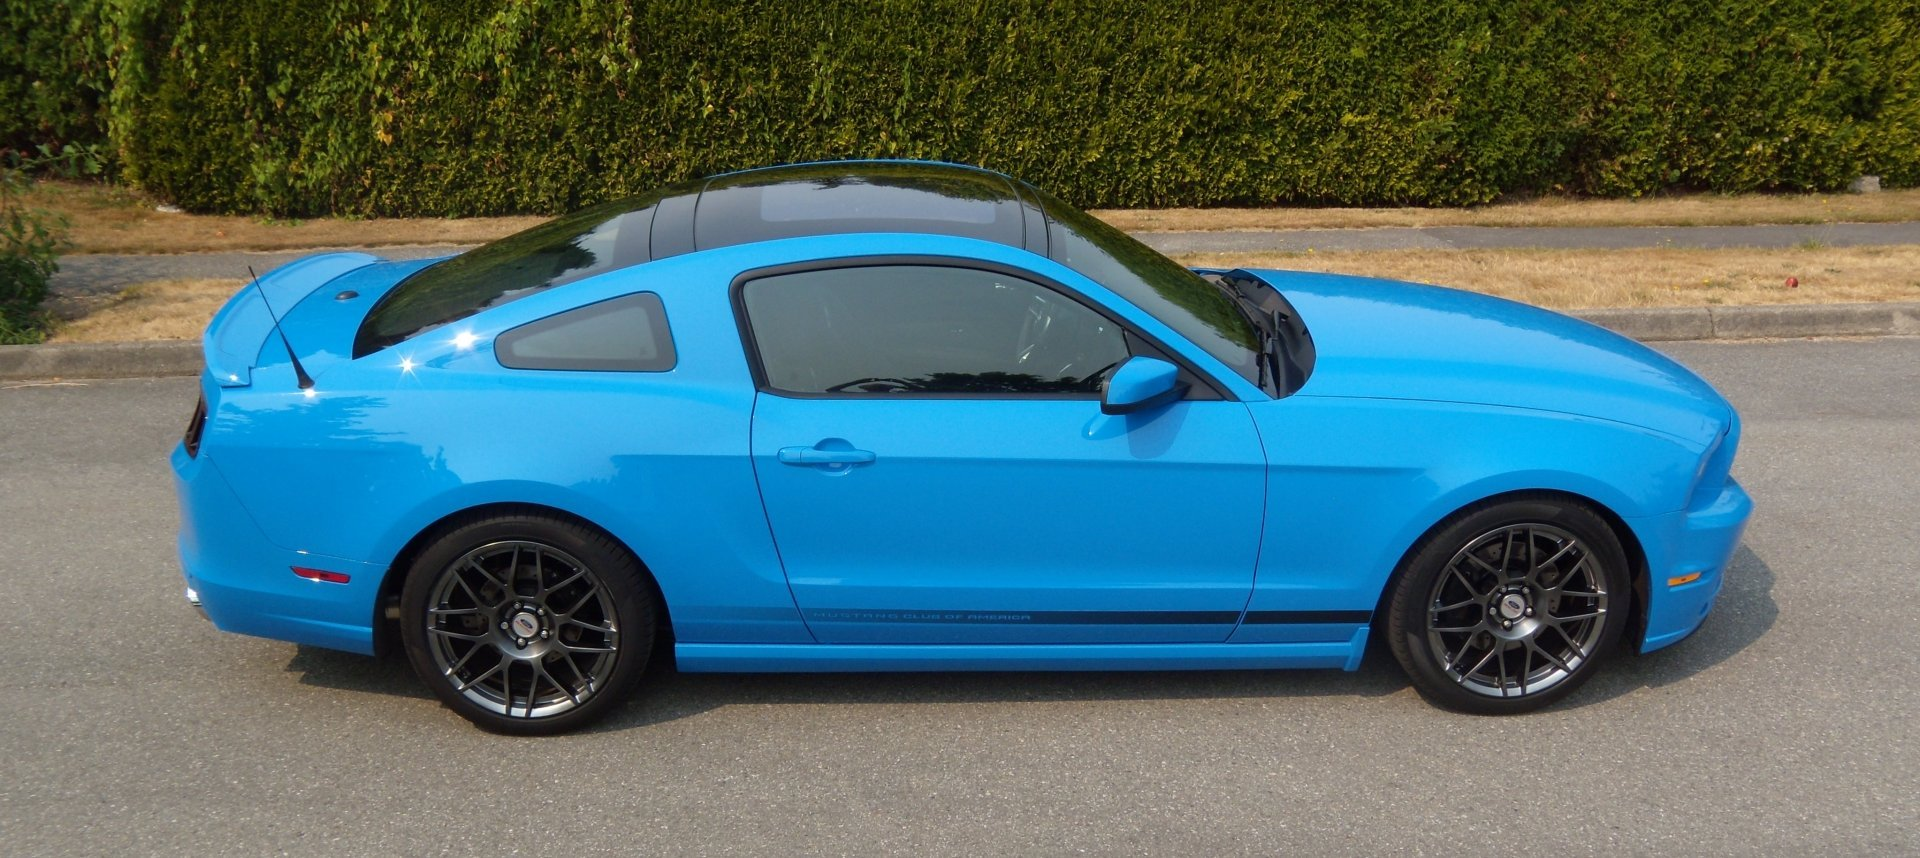 2011 2014 Mustang V6 Pic Thread Page 36 Ford